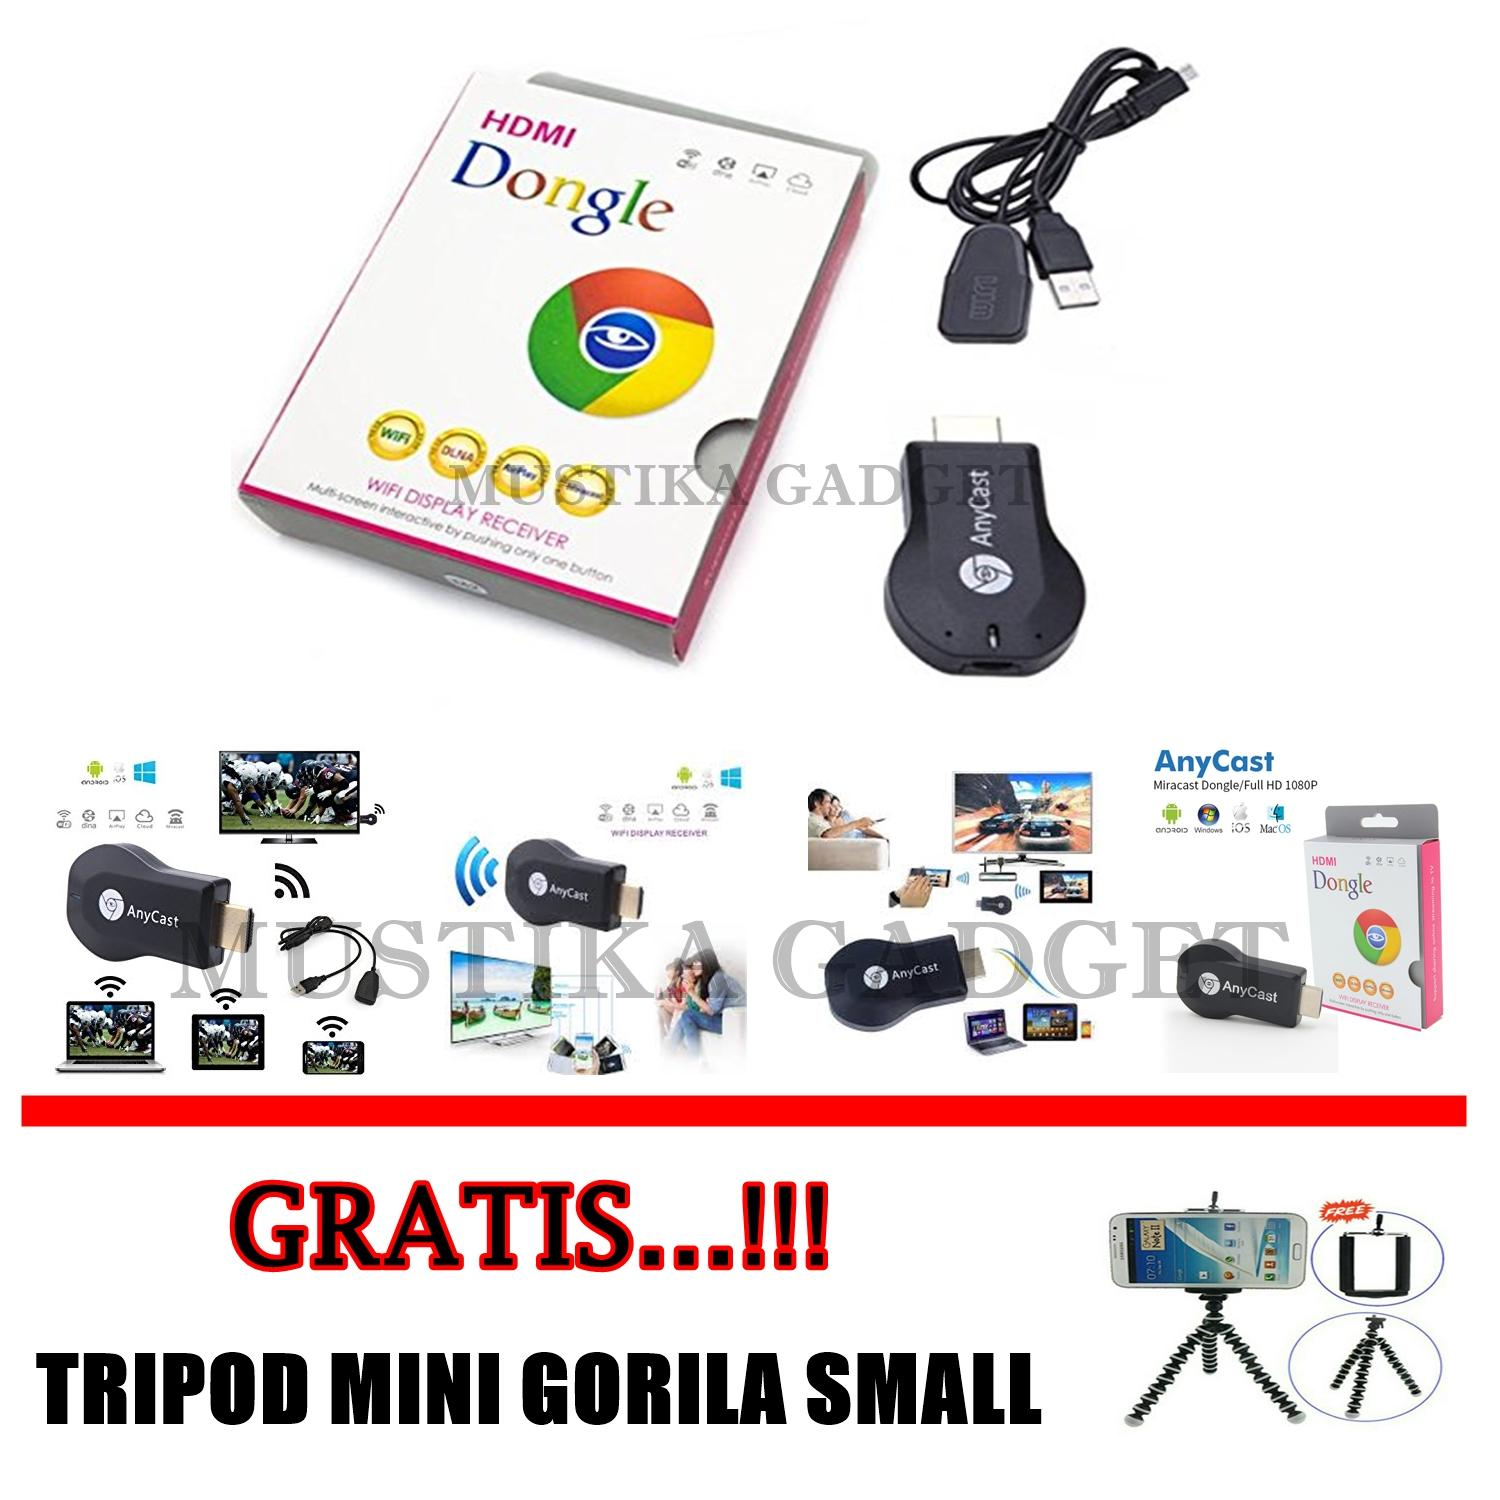 Buy Sell Cheapest Anycast Hdmi Dongle Best Quality Product Deals Wifi Display Receiver Tv Gratis Tripod Mini Gorila